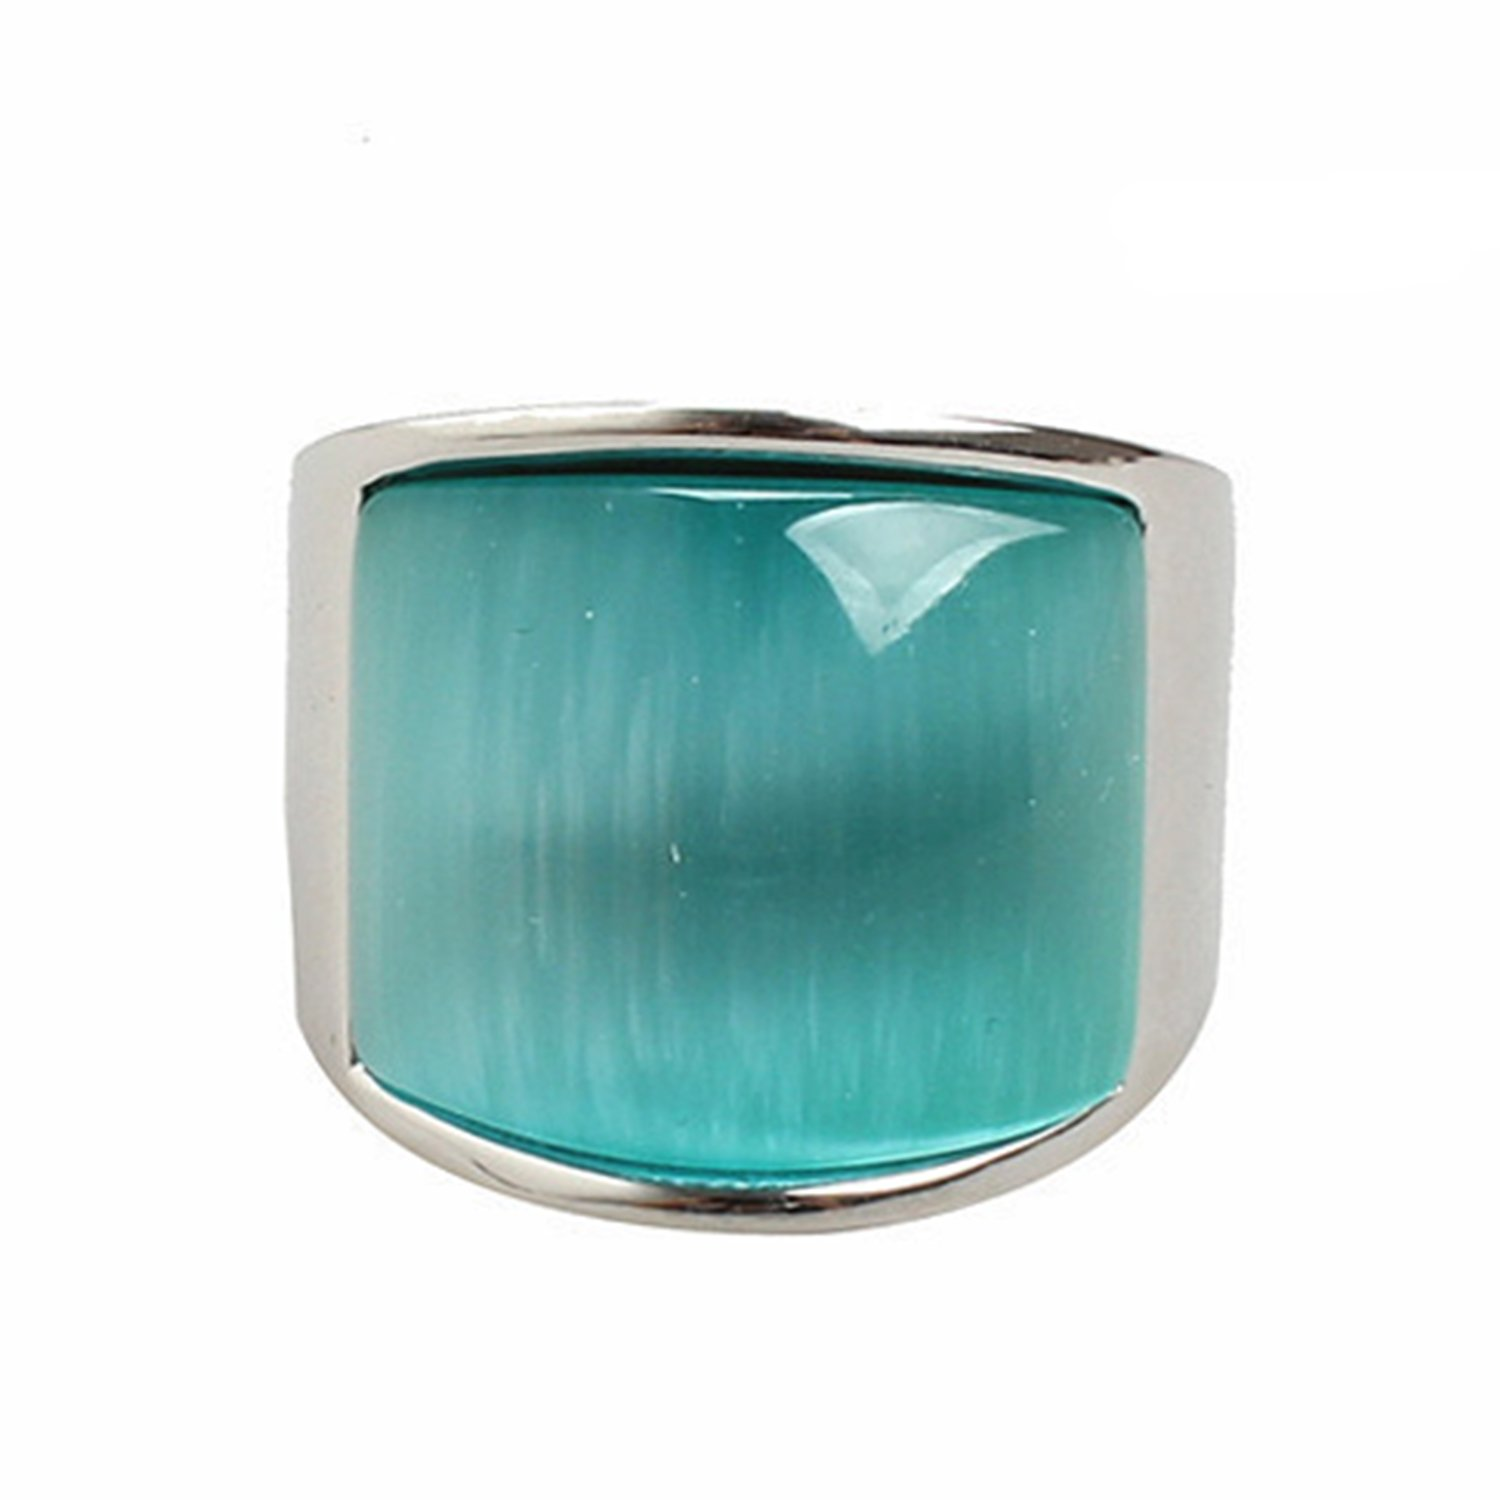 LILILEO Jewelry Stainless Steel Retro Big Light Blue Cat's Eye Stone Ring For Unisex Rings by LILILEO